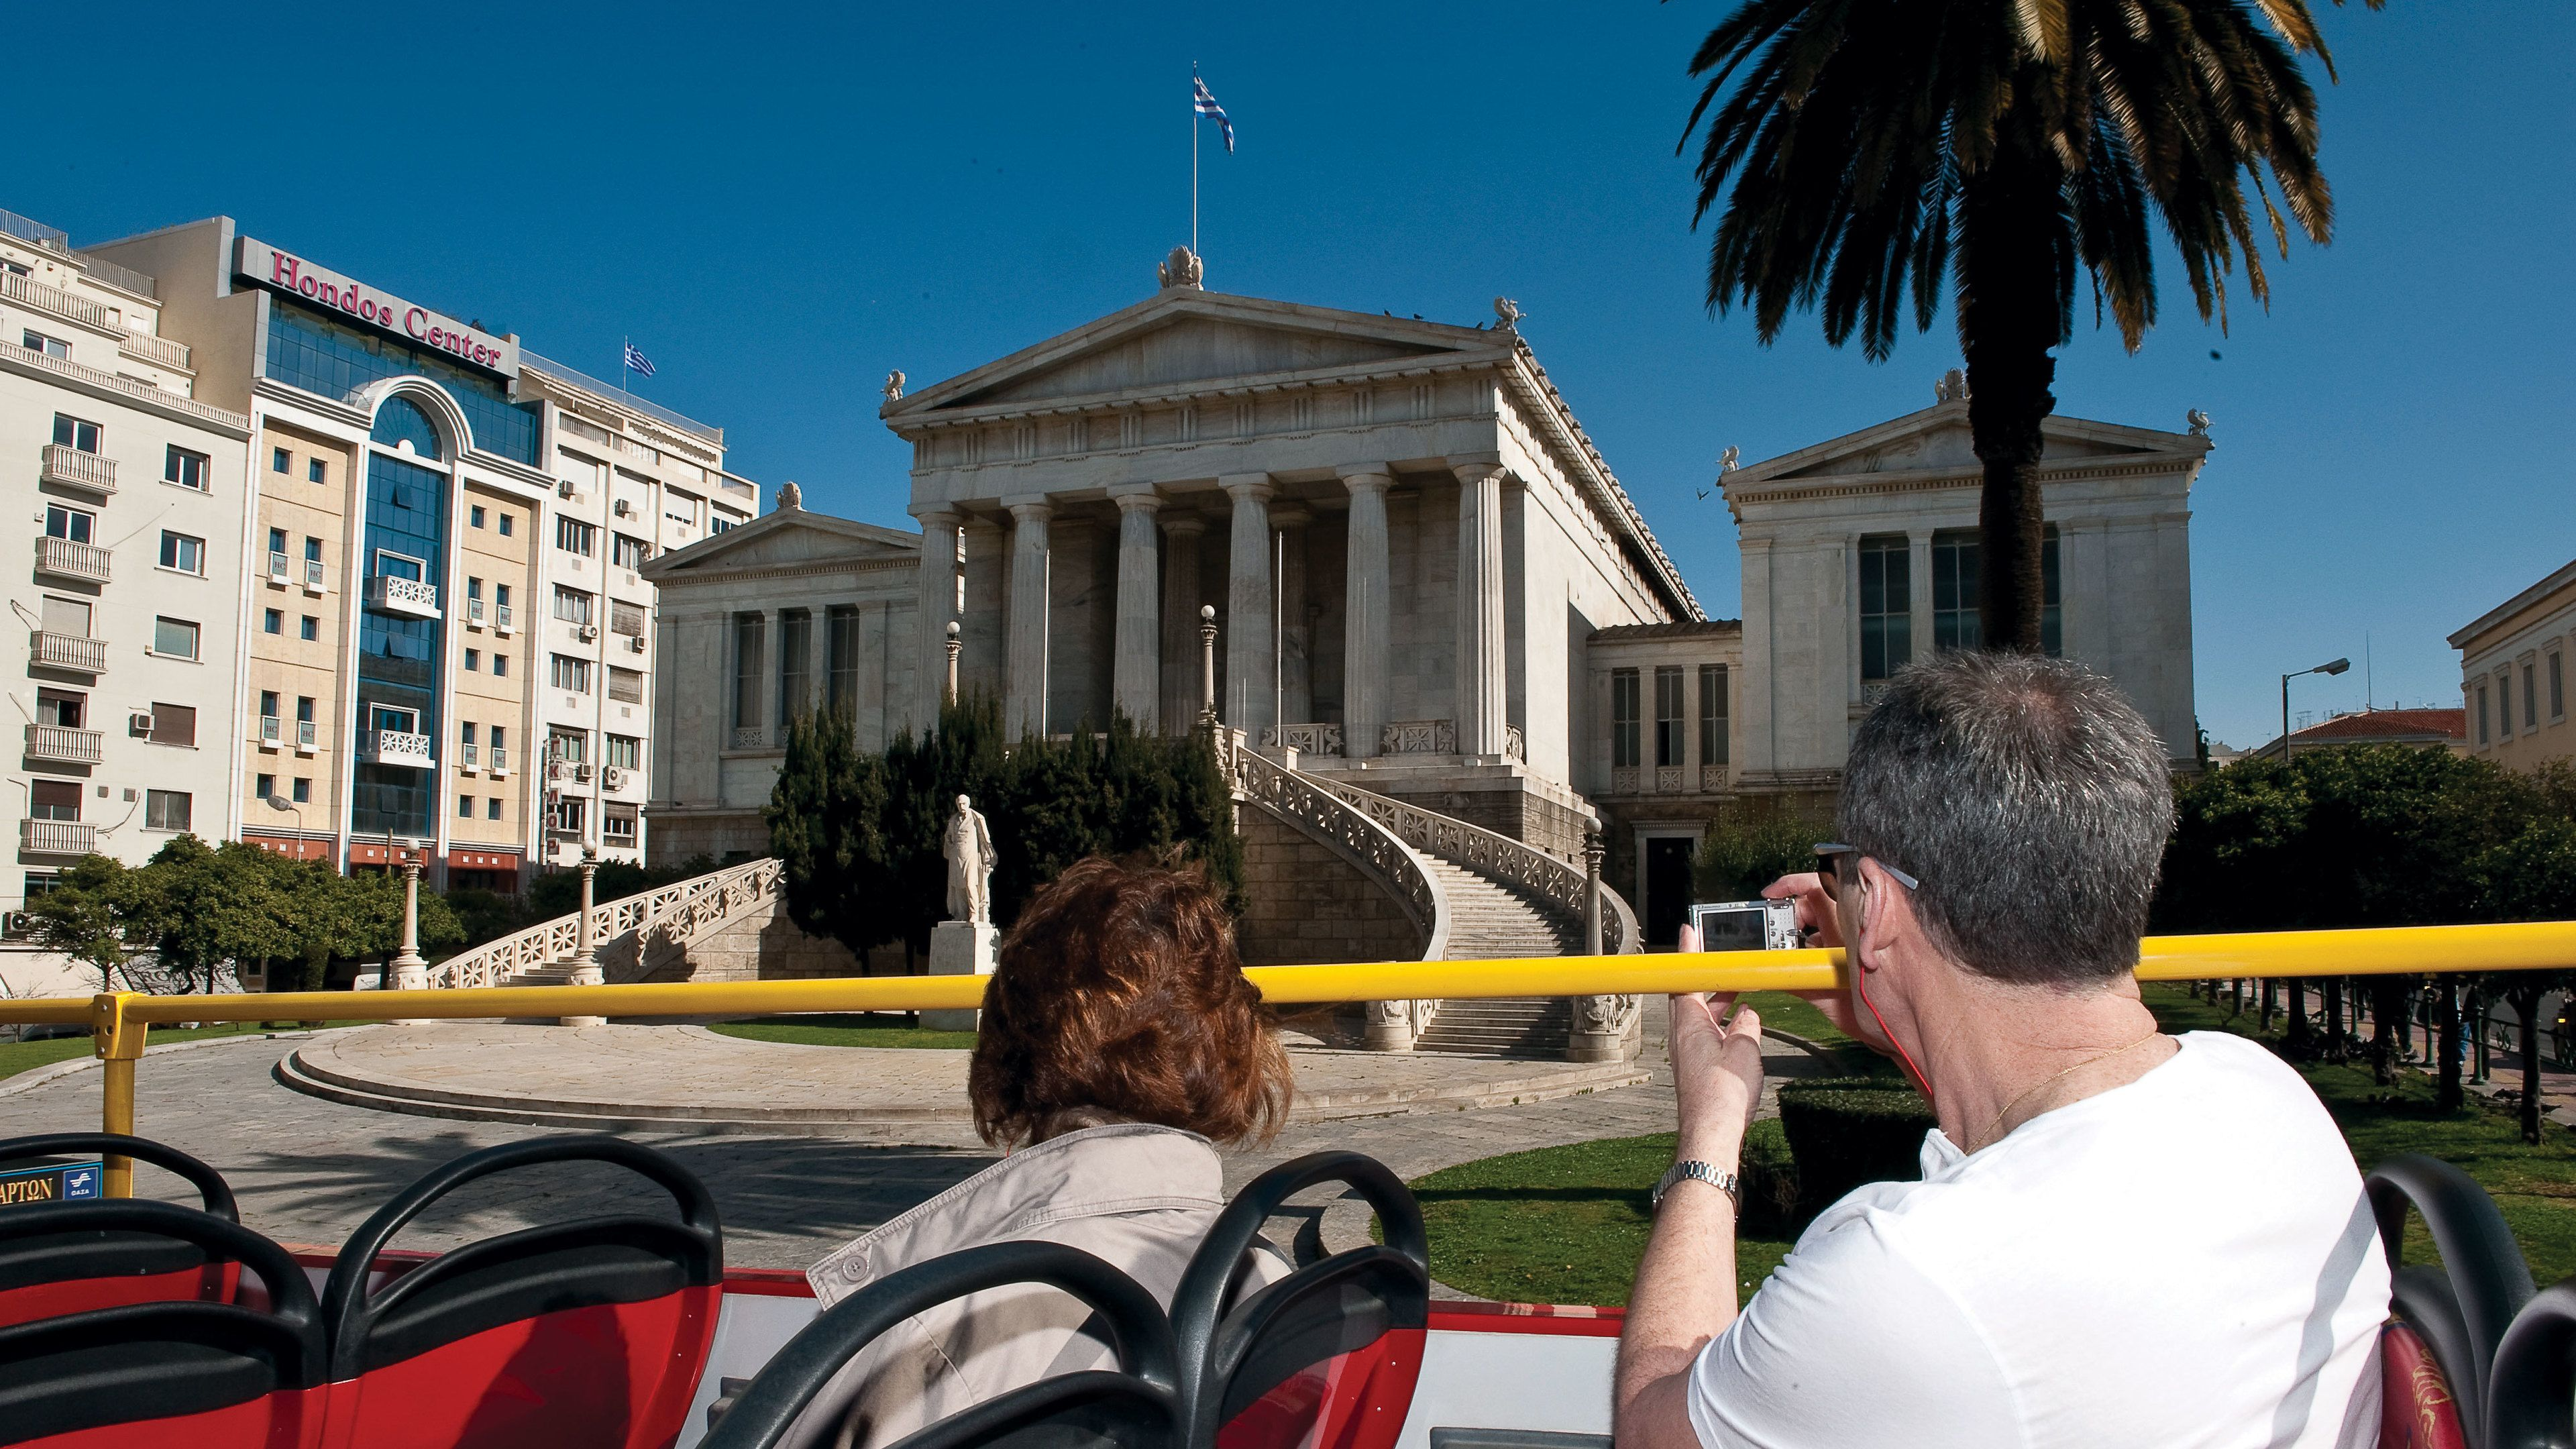 Open-top tour bus with passengers passing the National Library of Greece in Athens